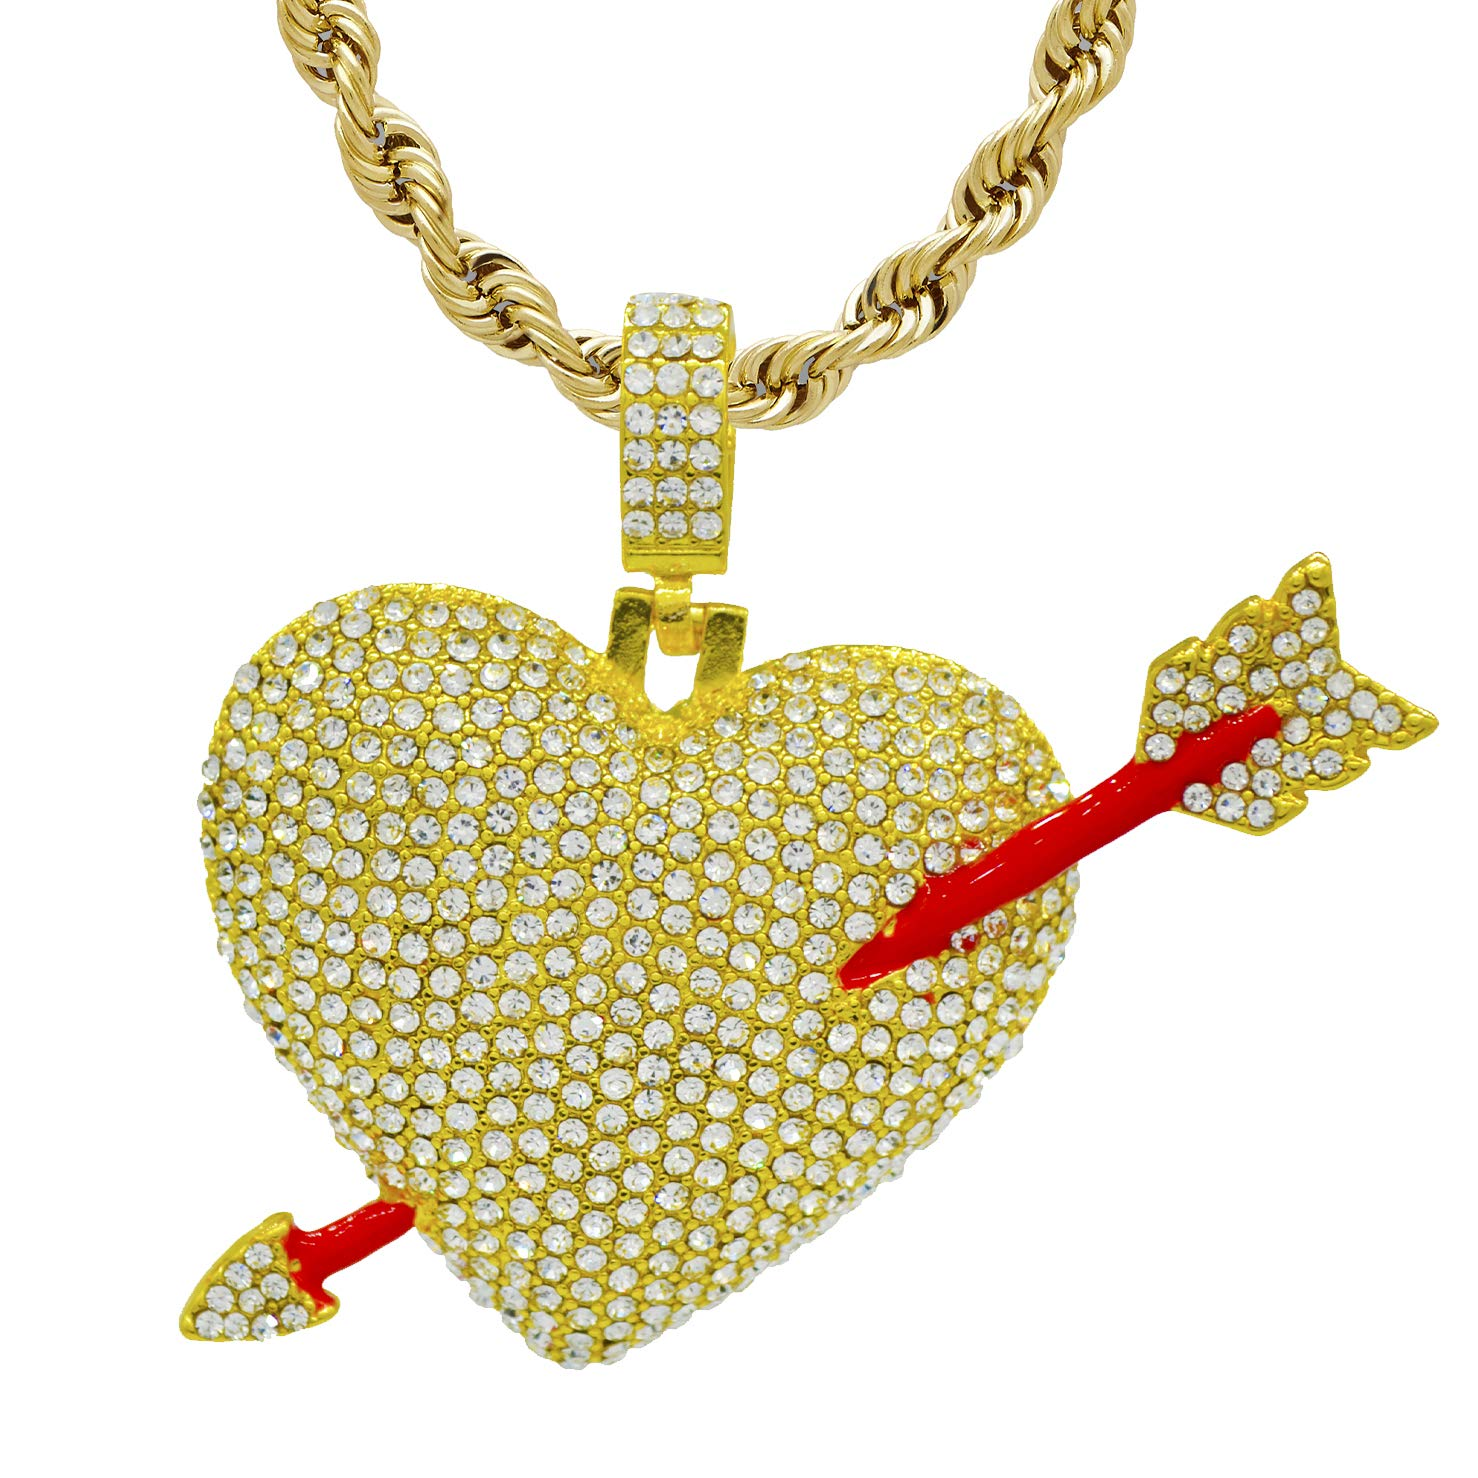 22ceb96b92dbf Dfwjeweler Hip Hop 18 k Gold Plated Iced Out cz Fully Broken Heart Pendant  with Tennis Chain or Rope Chain